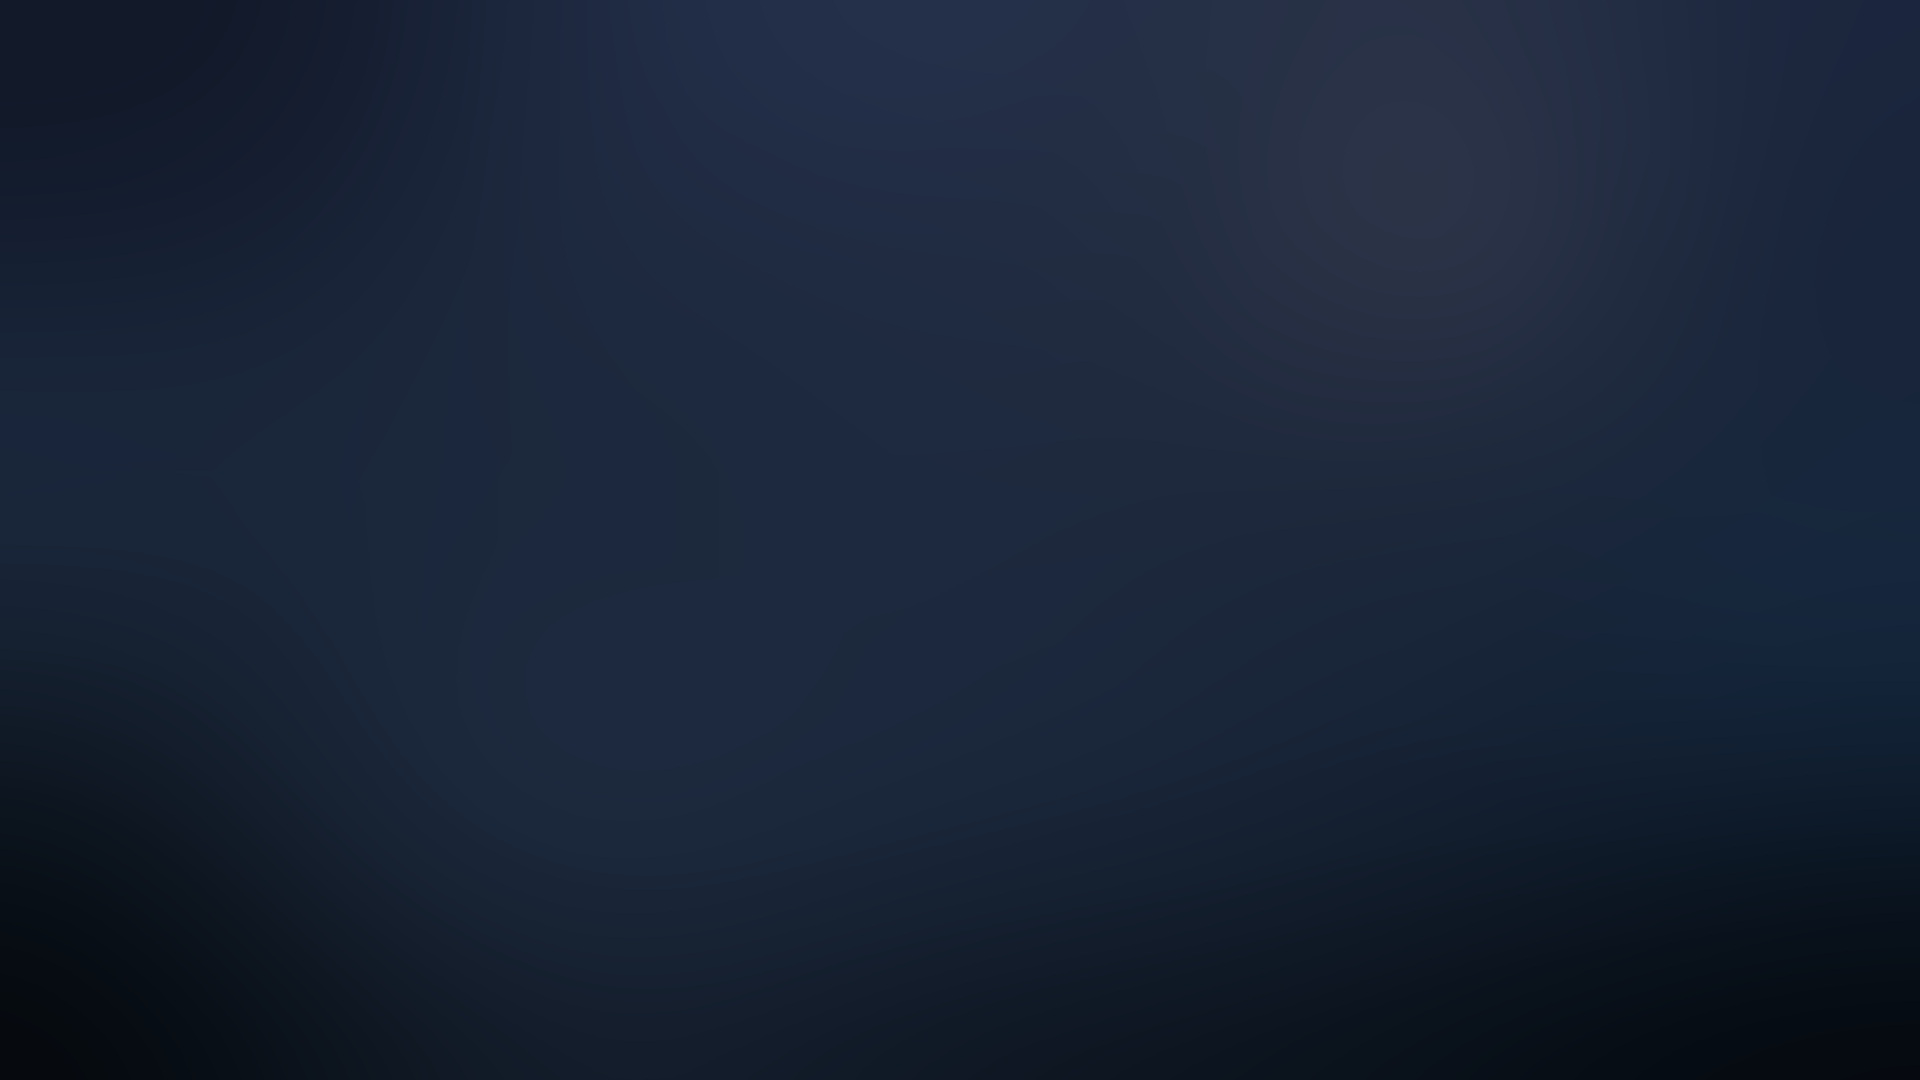 Wallpapers For Navy Blue Gradient Background 1920x1080